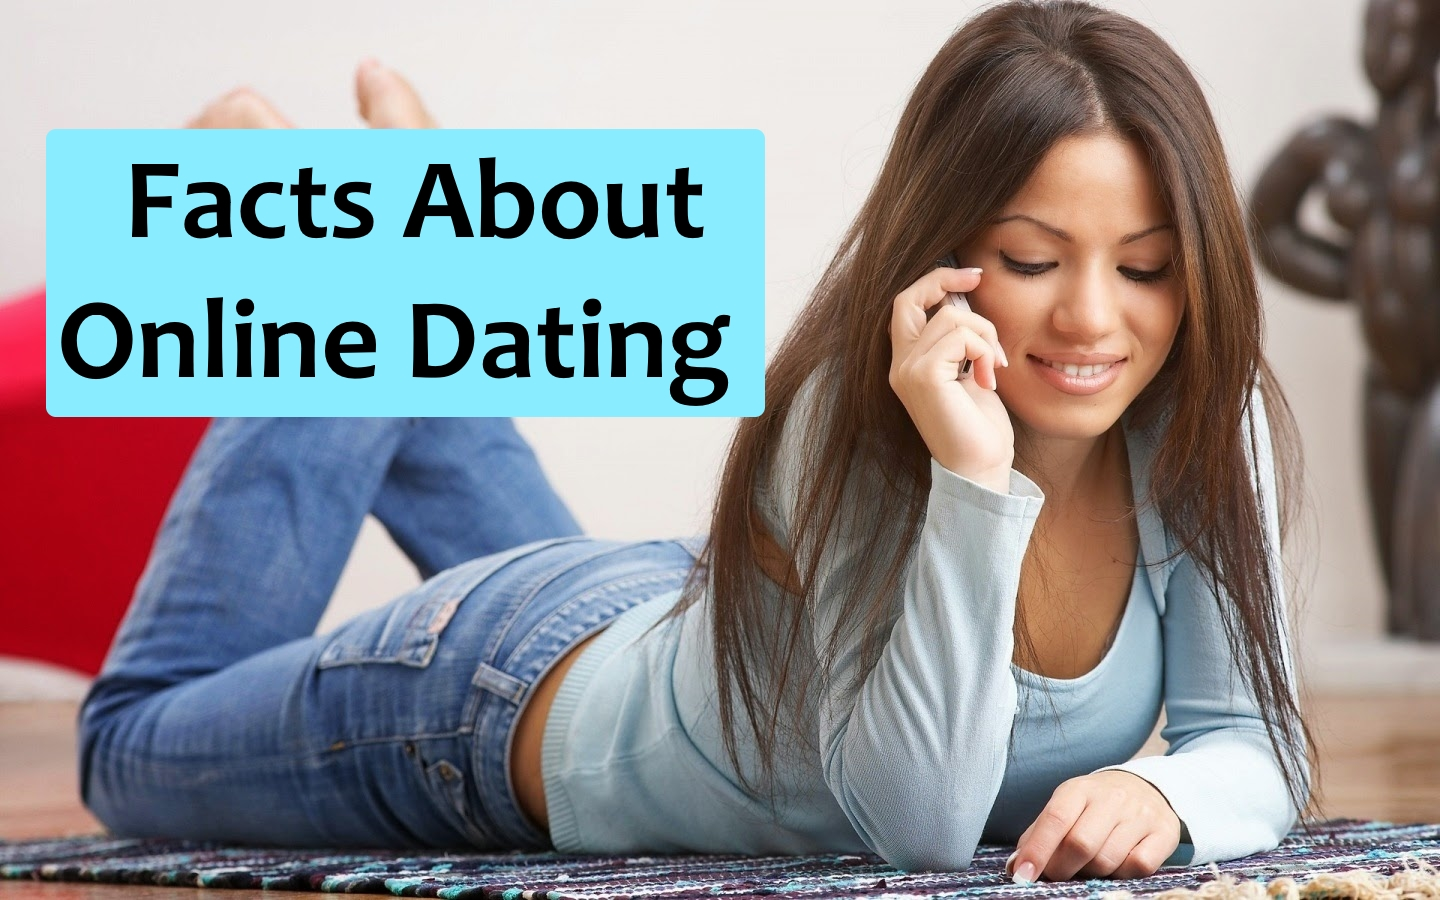 Cool facts about online dating